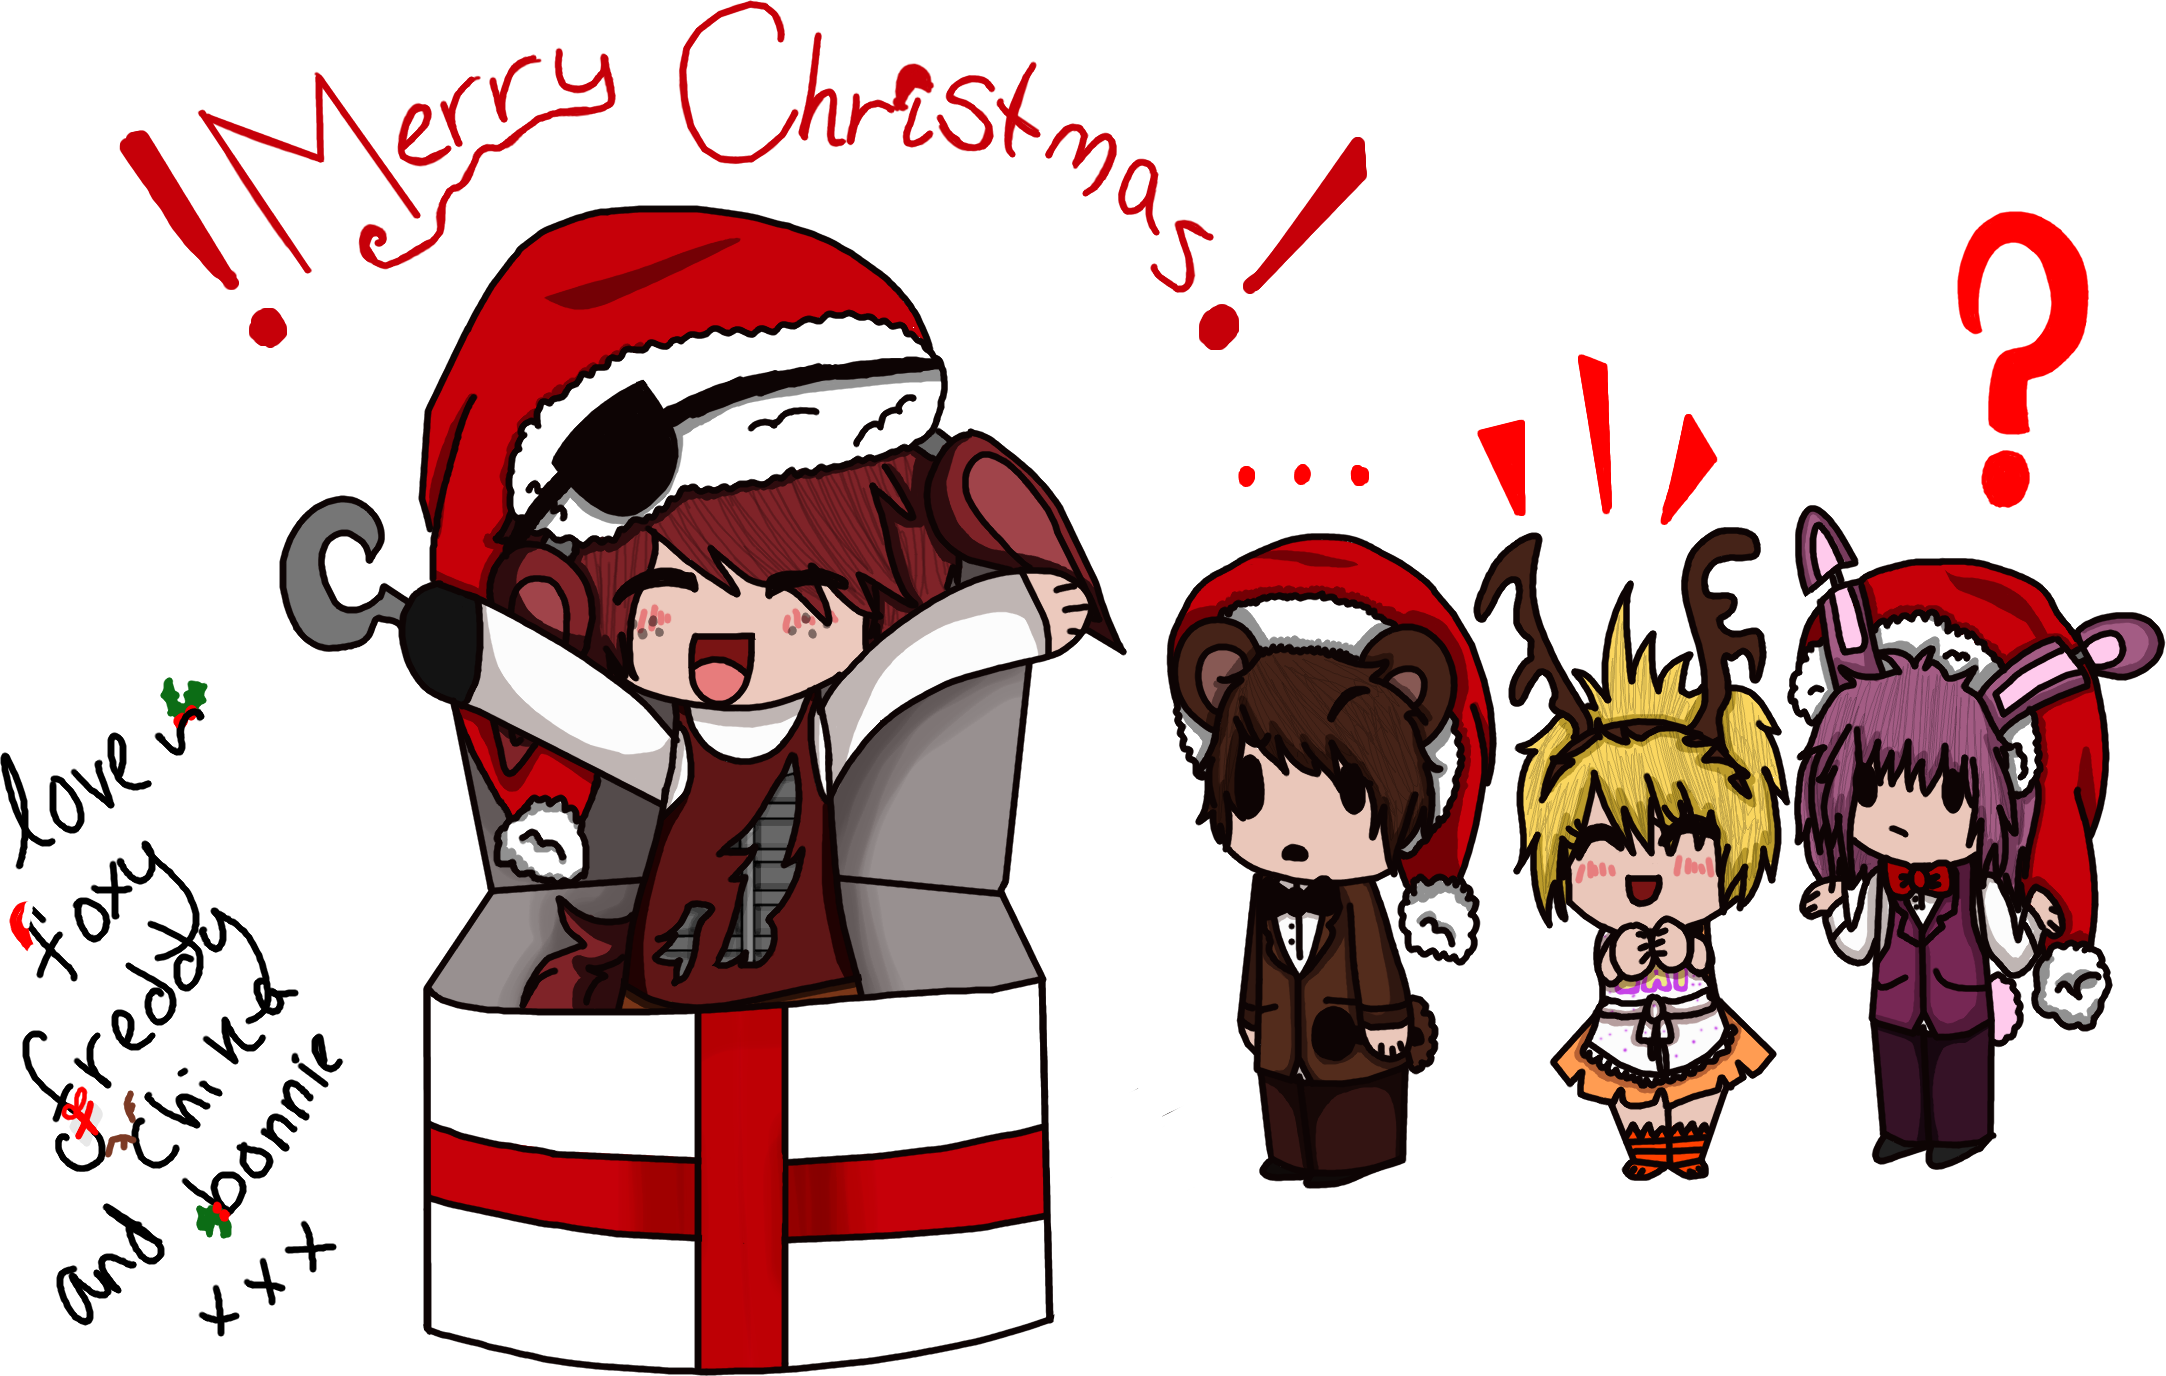 Merry Christmas From Fnaf (mostly Foxy) by xXpotsy208Xx on DeviantArt